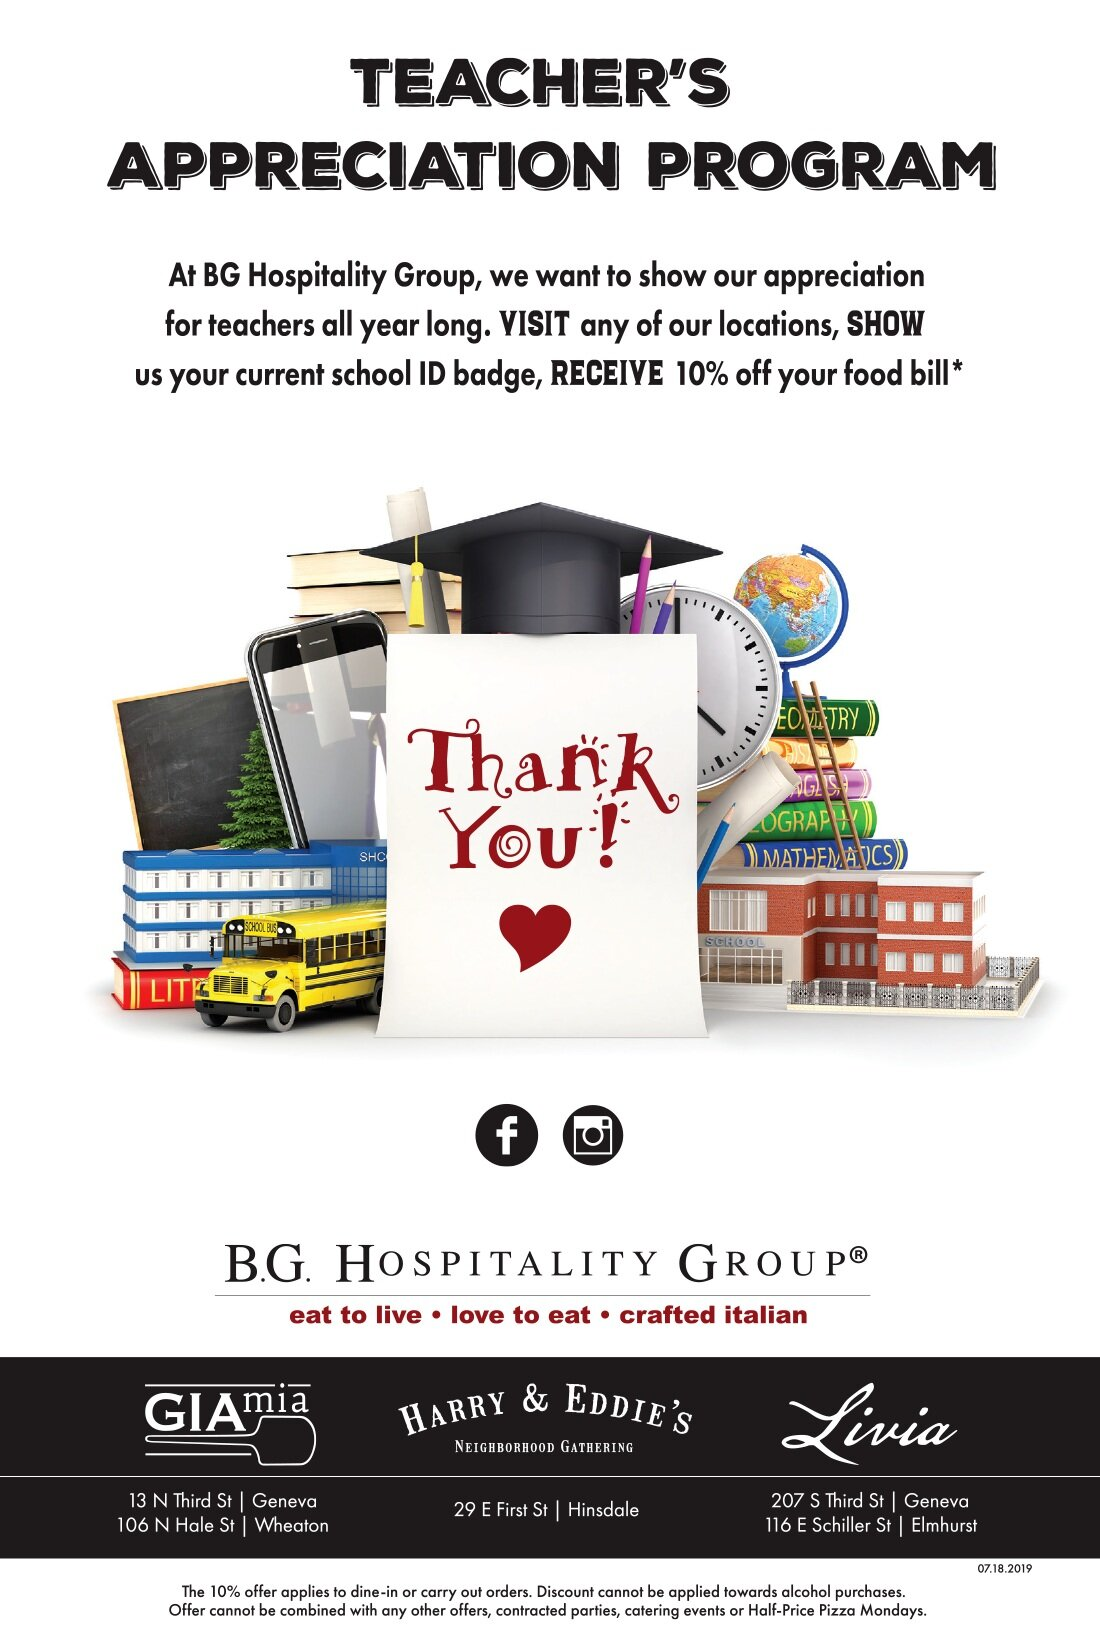 Teacher Appreciation*:  At BG Hospitality Group, we want to show our appreciation for our teachers all year long! Visit any of our locations, Show us your current school ID badge and receive 10 percent off your food bill…